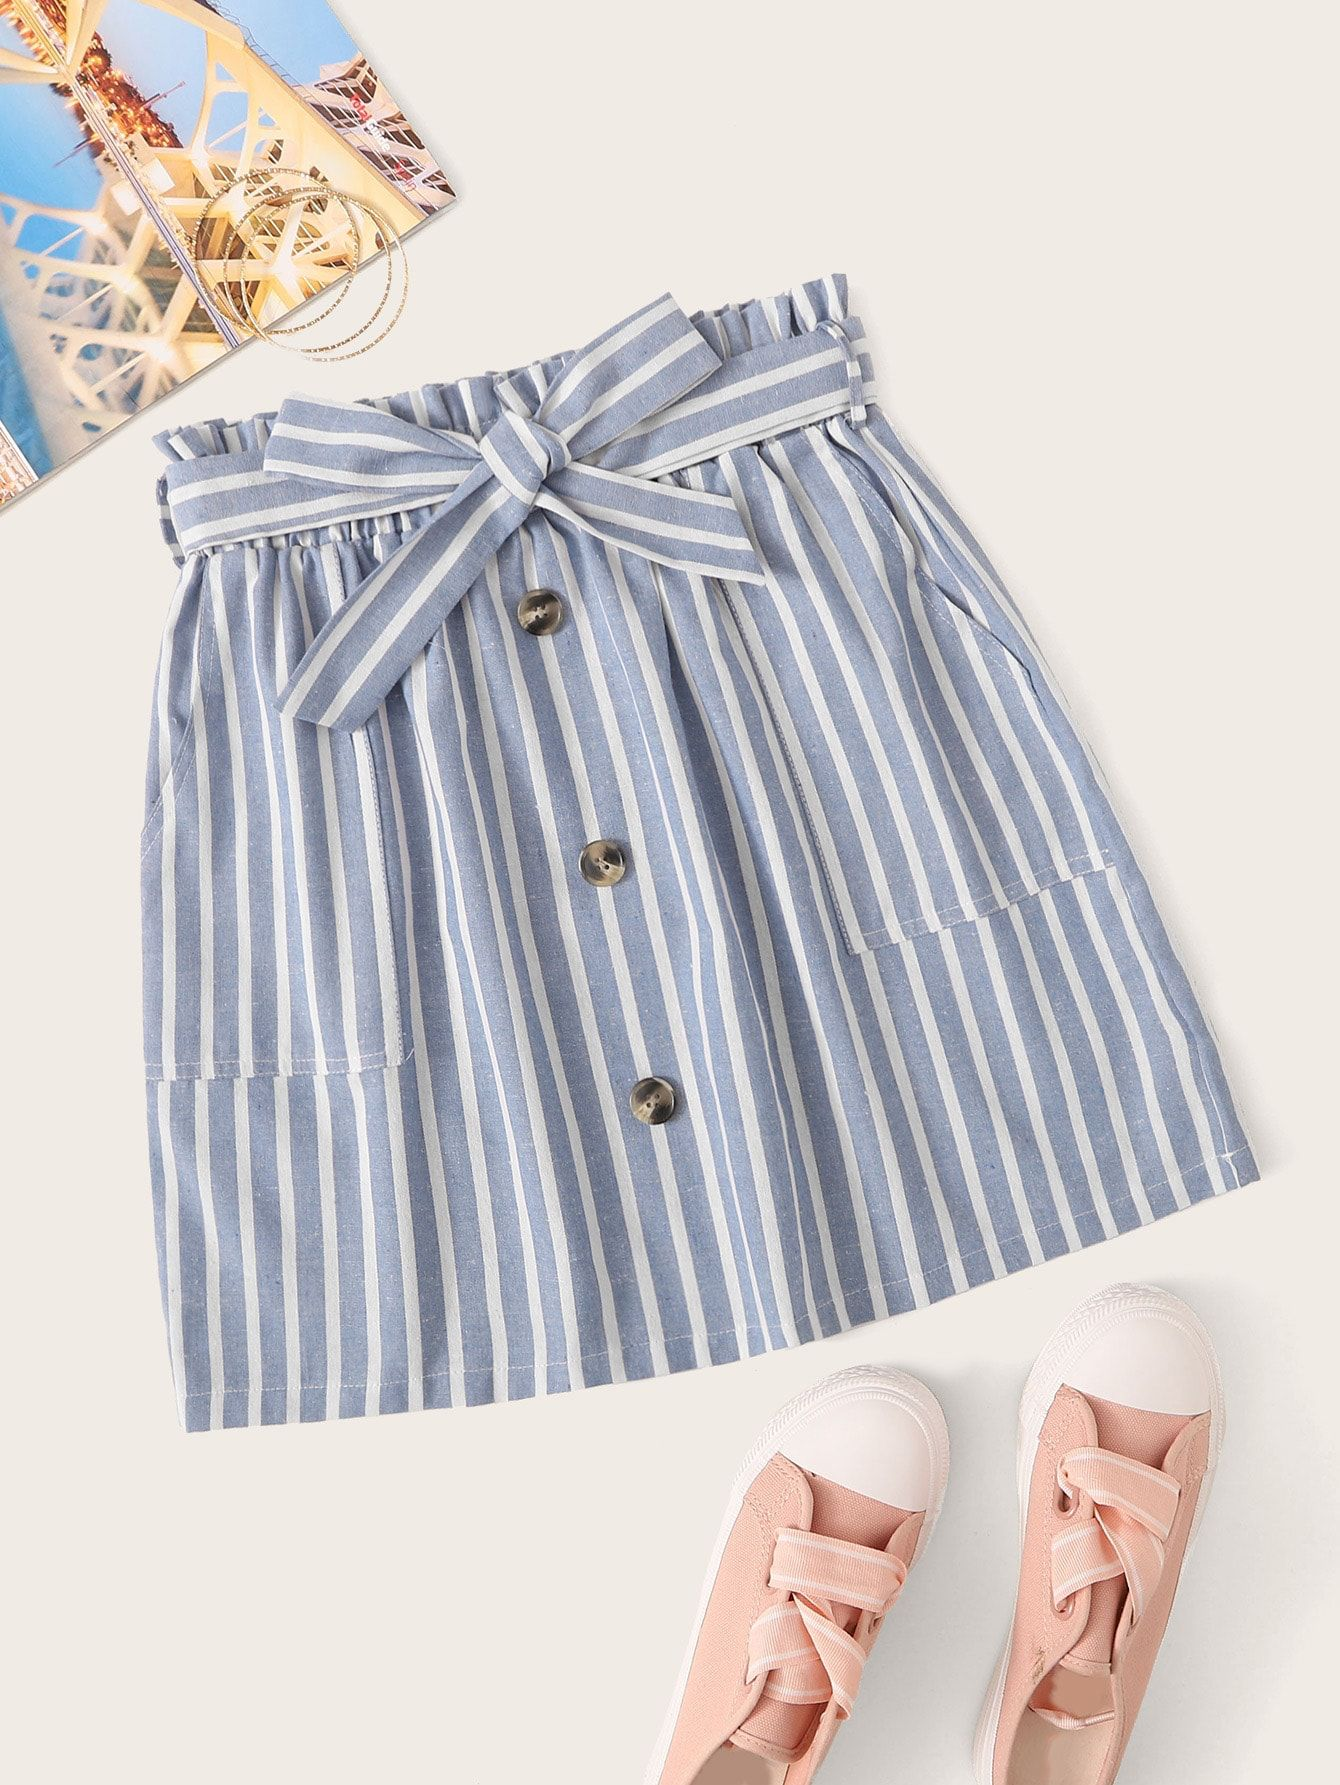 Miniskirt Casual Dresses Vintage Prom Dresses Gym Outfit Men Occasion Skirts Fashion Hijab 2019 Dress With Sneakers